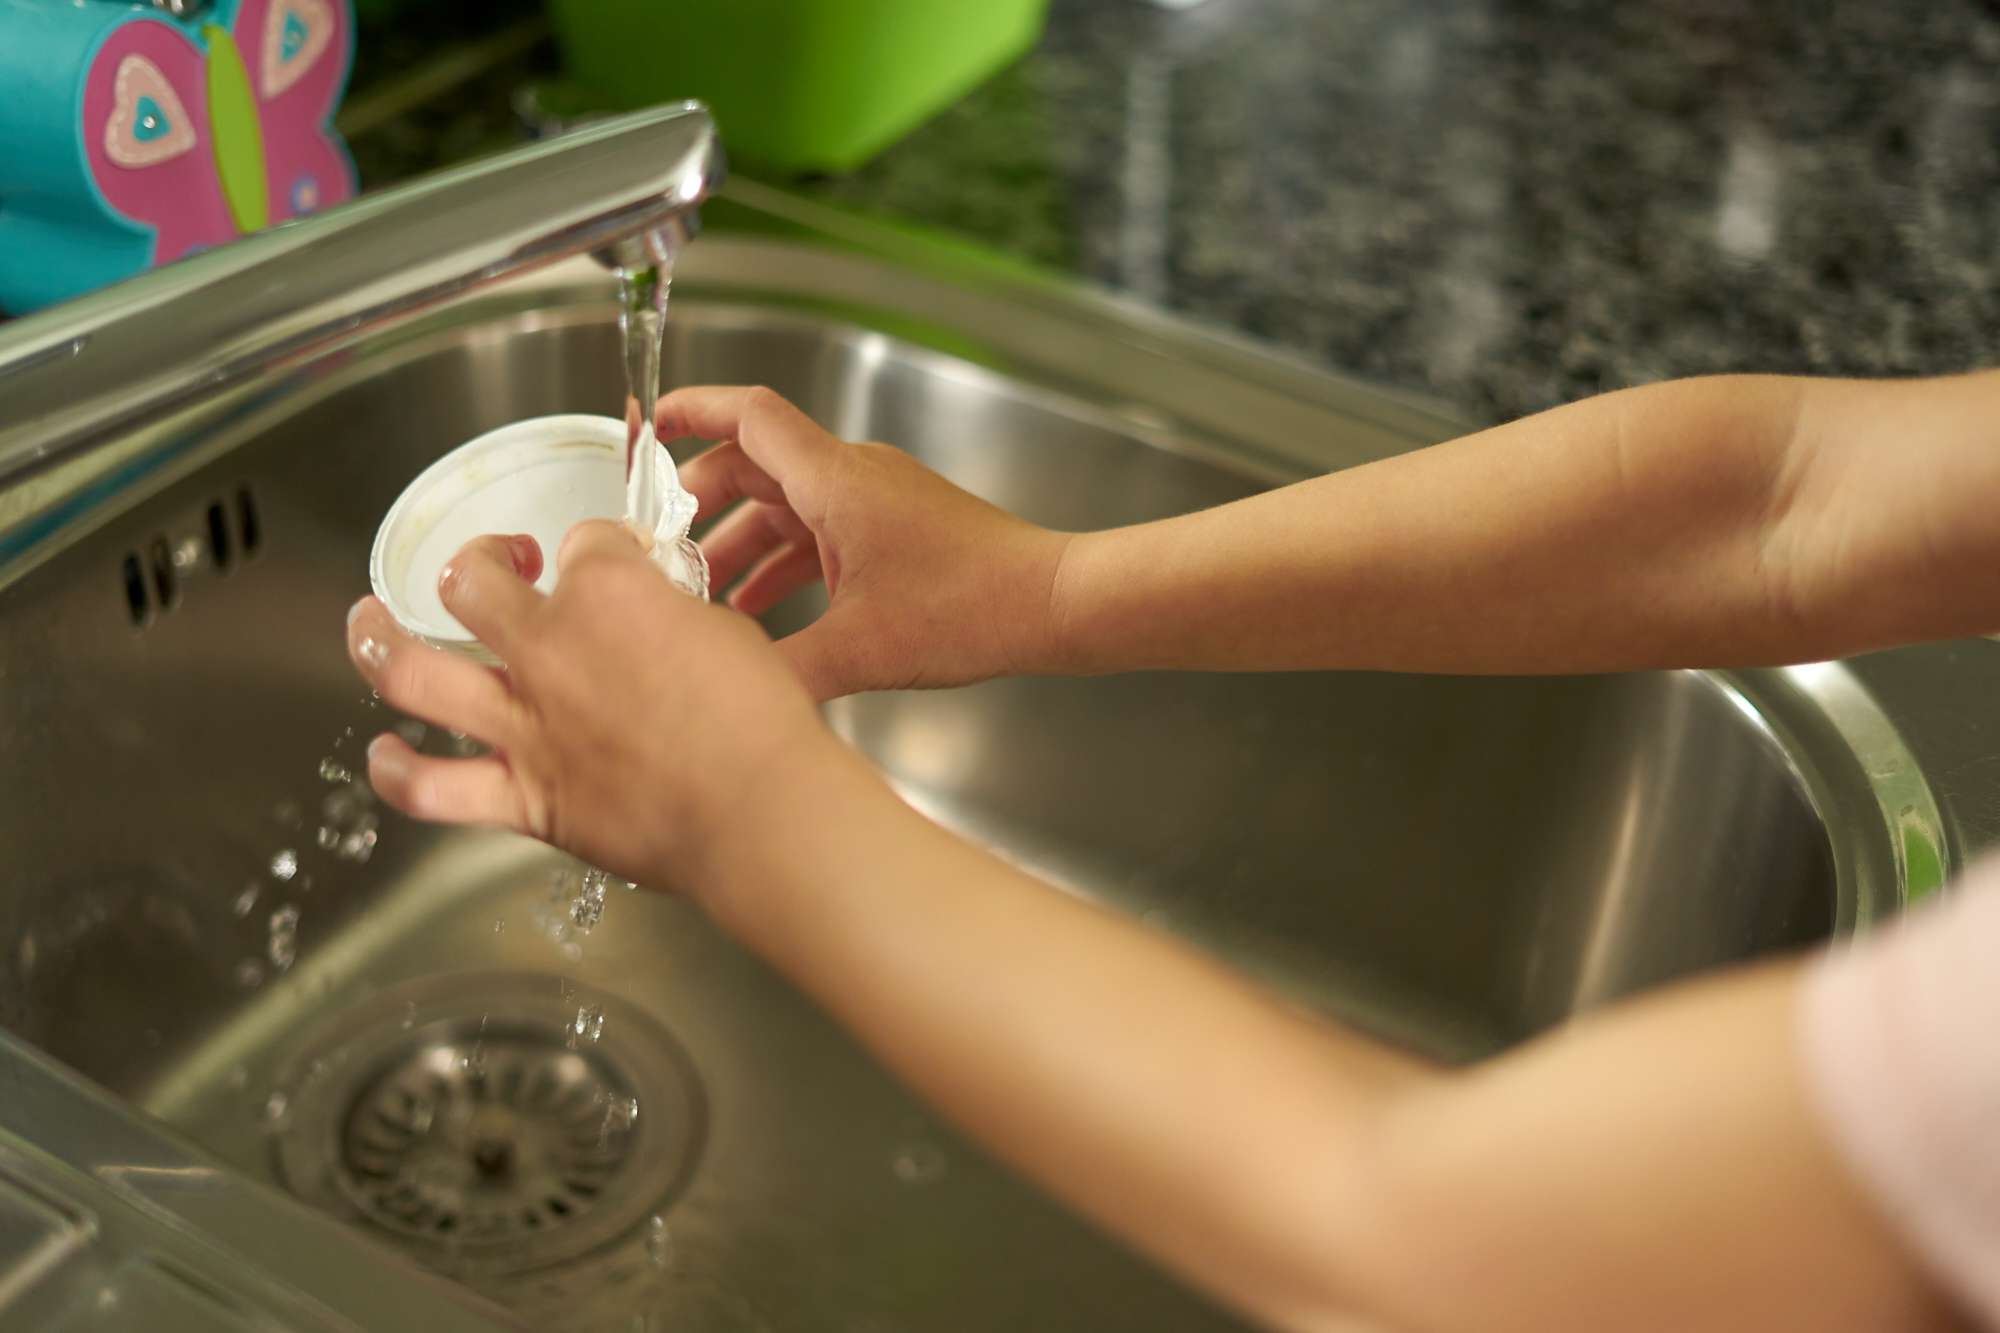 kid's hands rinse out plastic cup in kitchen sink before recycling